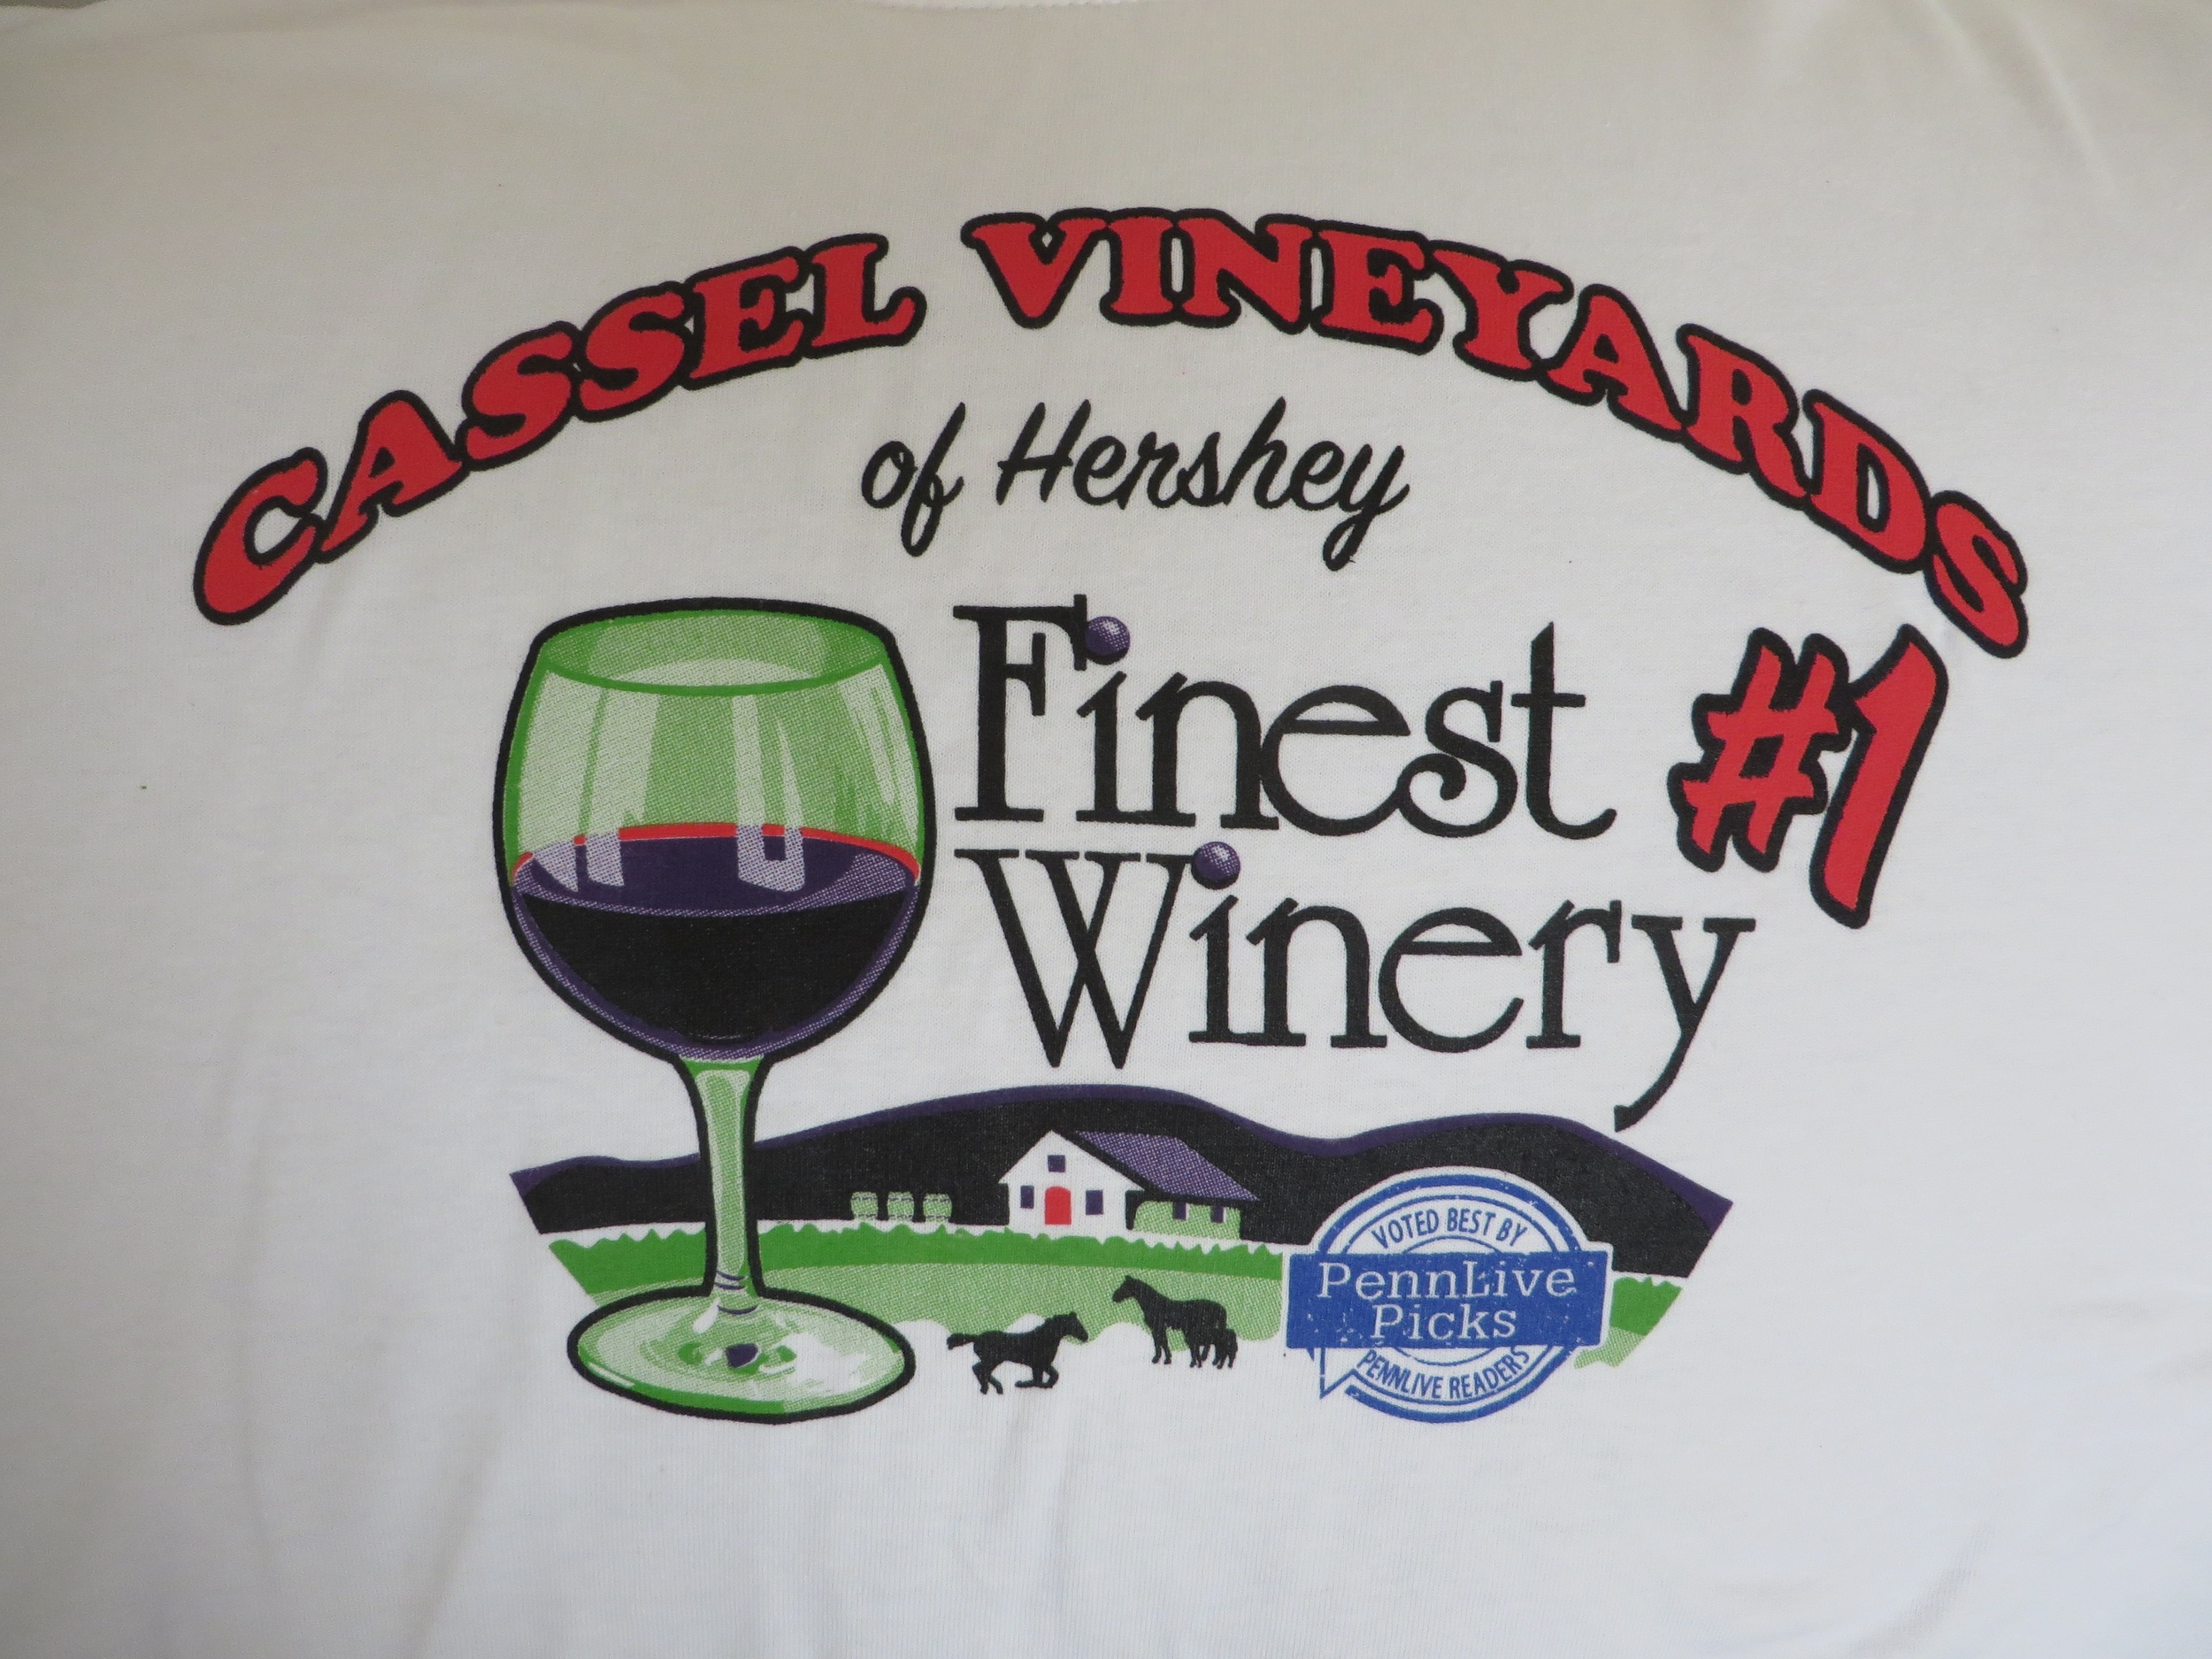 One of our many favorite memories from 2015 was your selection of us as the Pennlive finest winery in central PA!